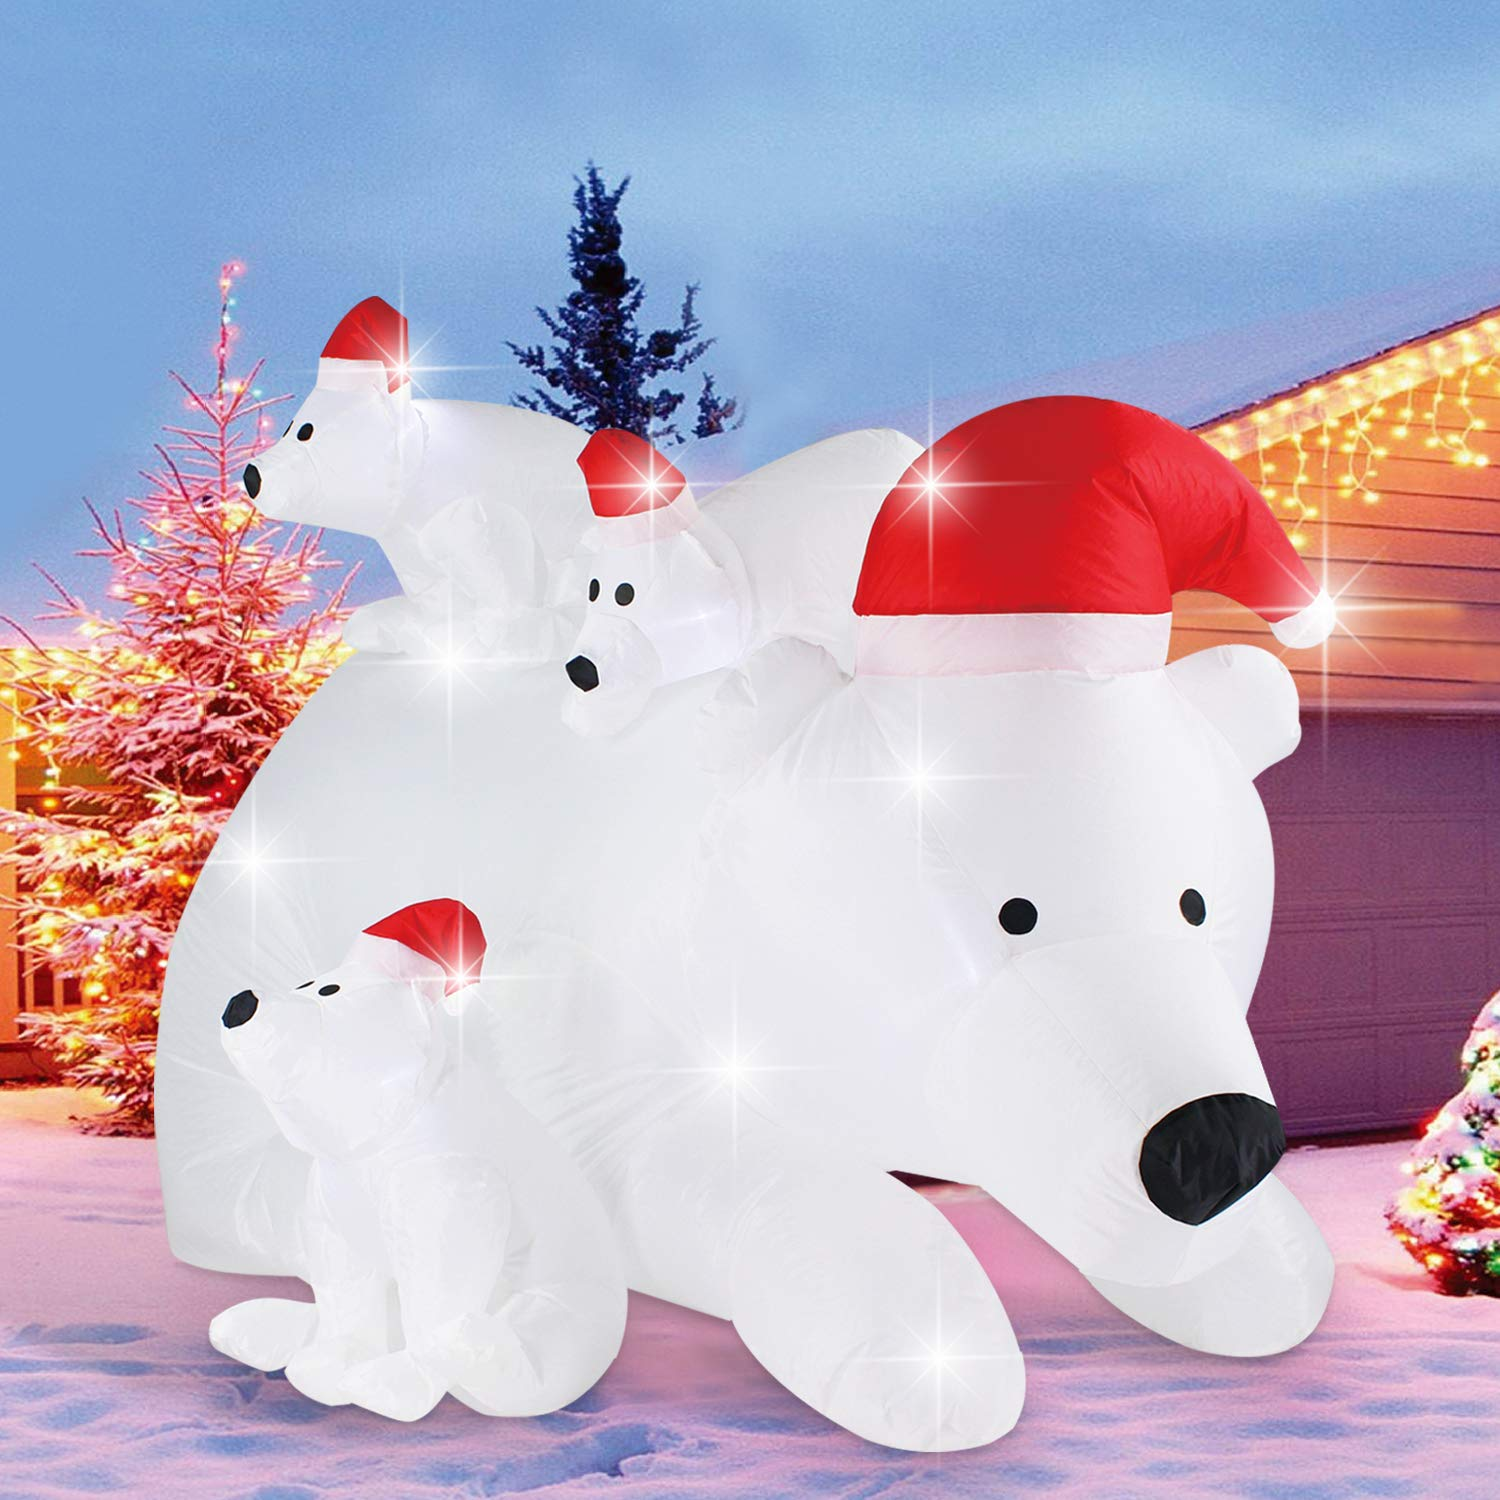 Fanshunlite Christmas Inflatable 6 FT Momma Polar Bear 3 Cubs Santa Hat,LED Lighted Blow-Up Yard Party Decoration Xmas Airblown Inflatable Outdoor Indoor Home Garden Family Prop Yard